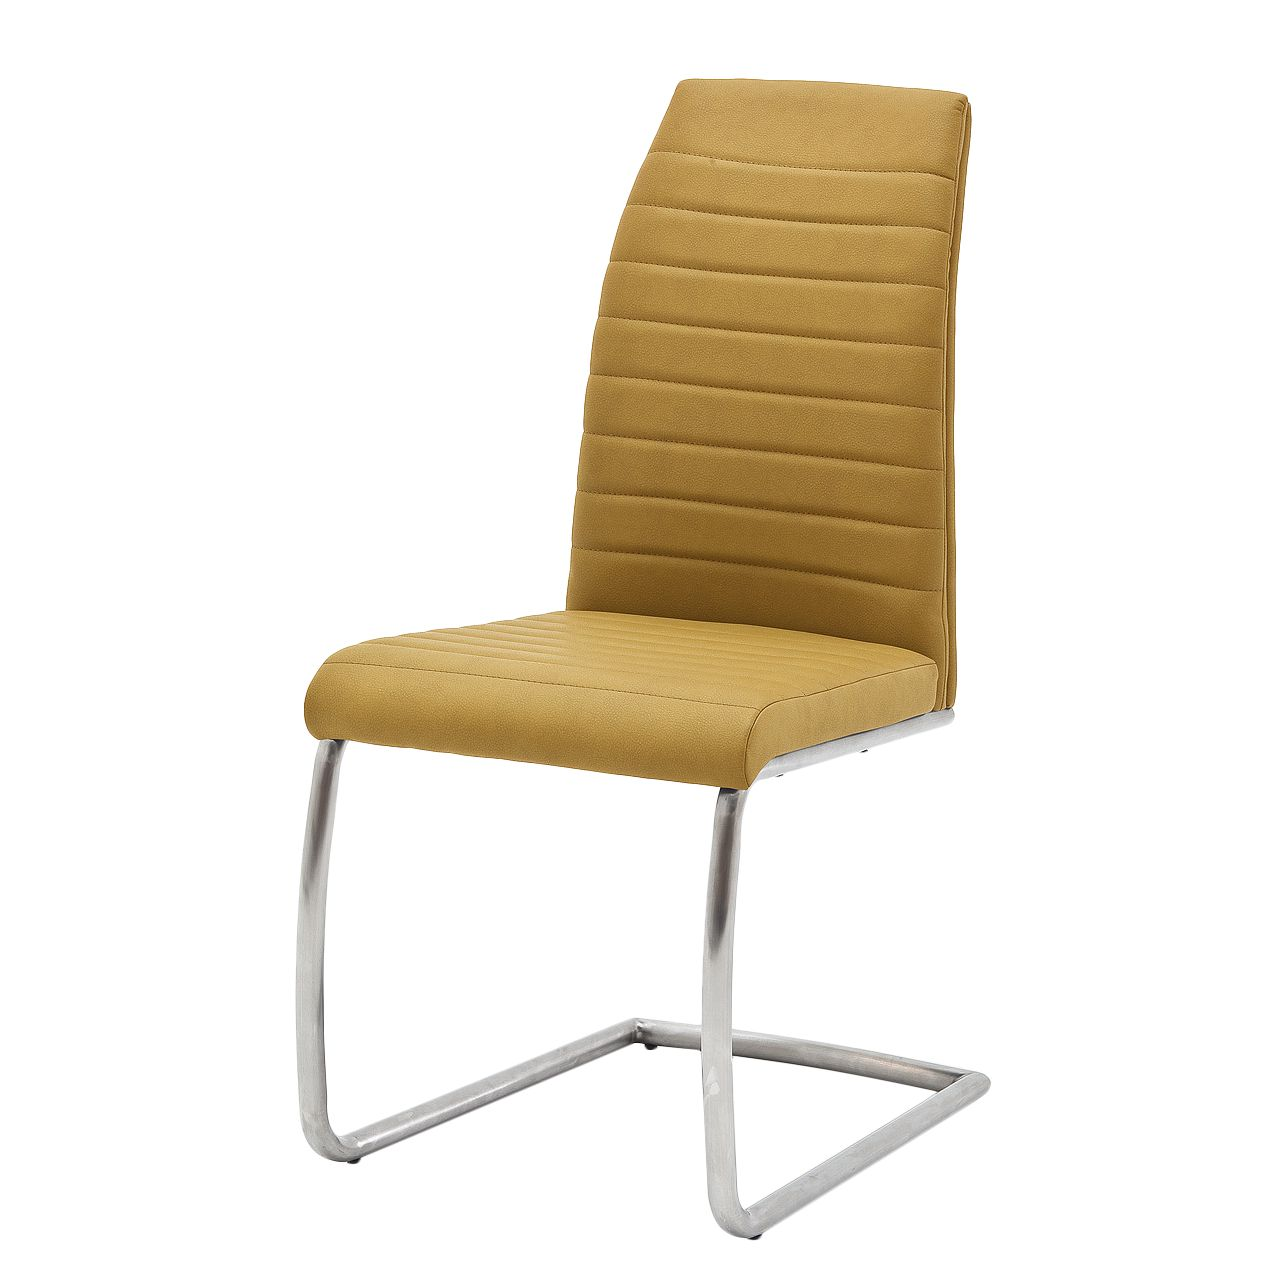 Home 24 - Chaise cantilever levittown i (lot de 2) - jaune curry, roomscape